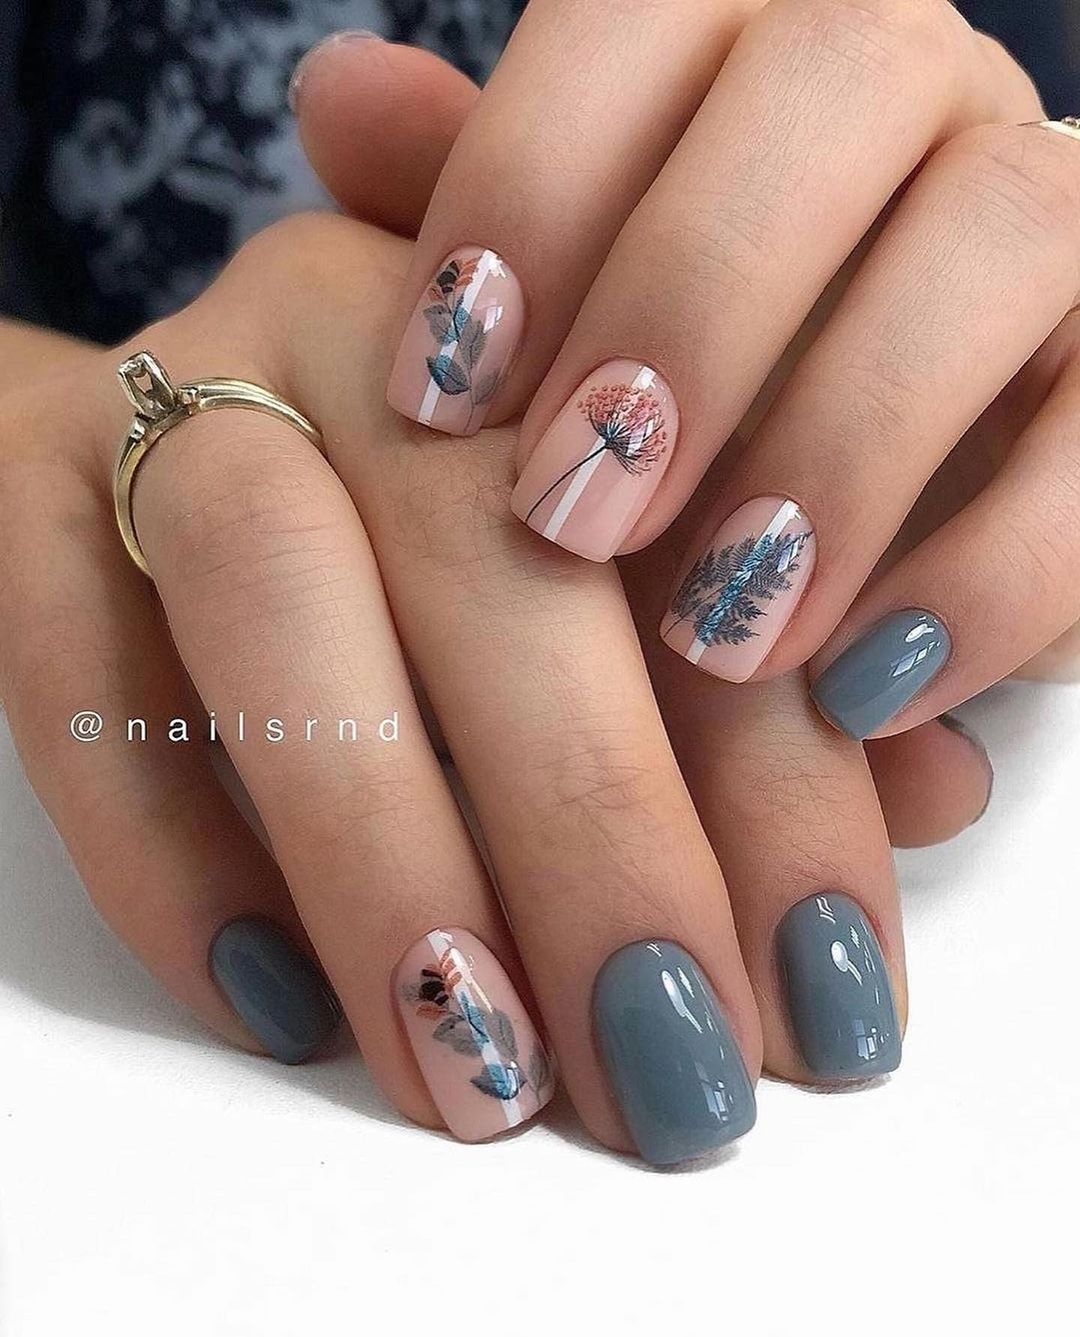 25 Trending Summer Nail Colors And Designs For 2021 images 8